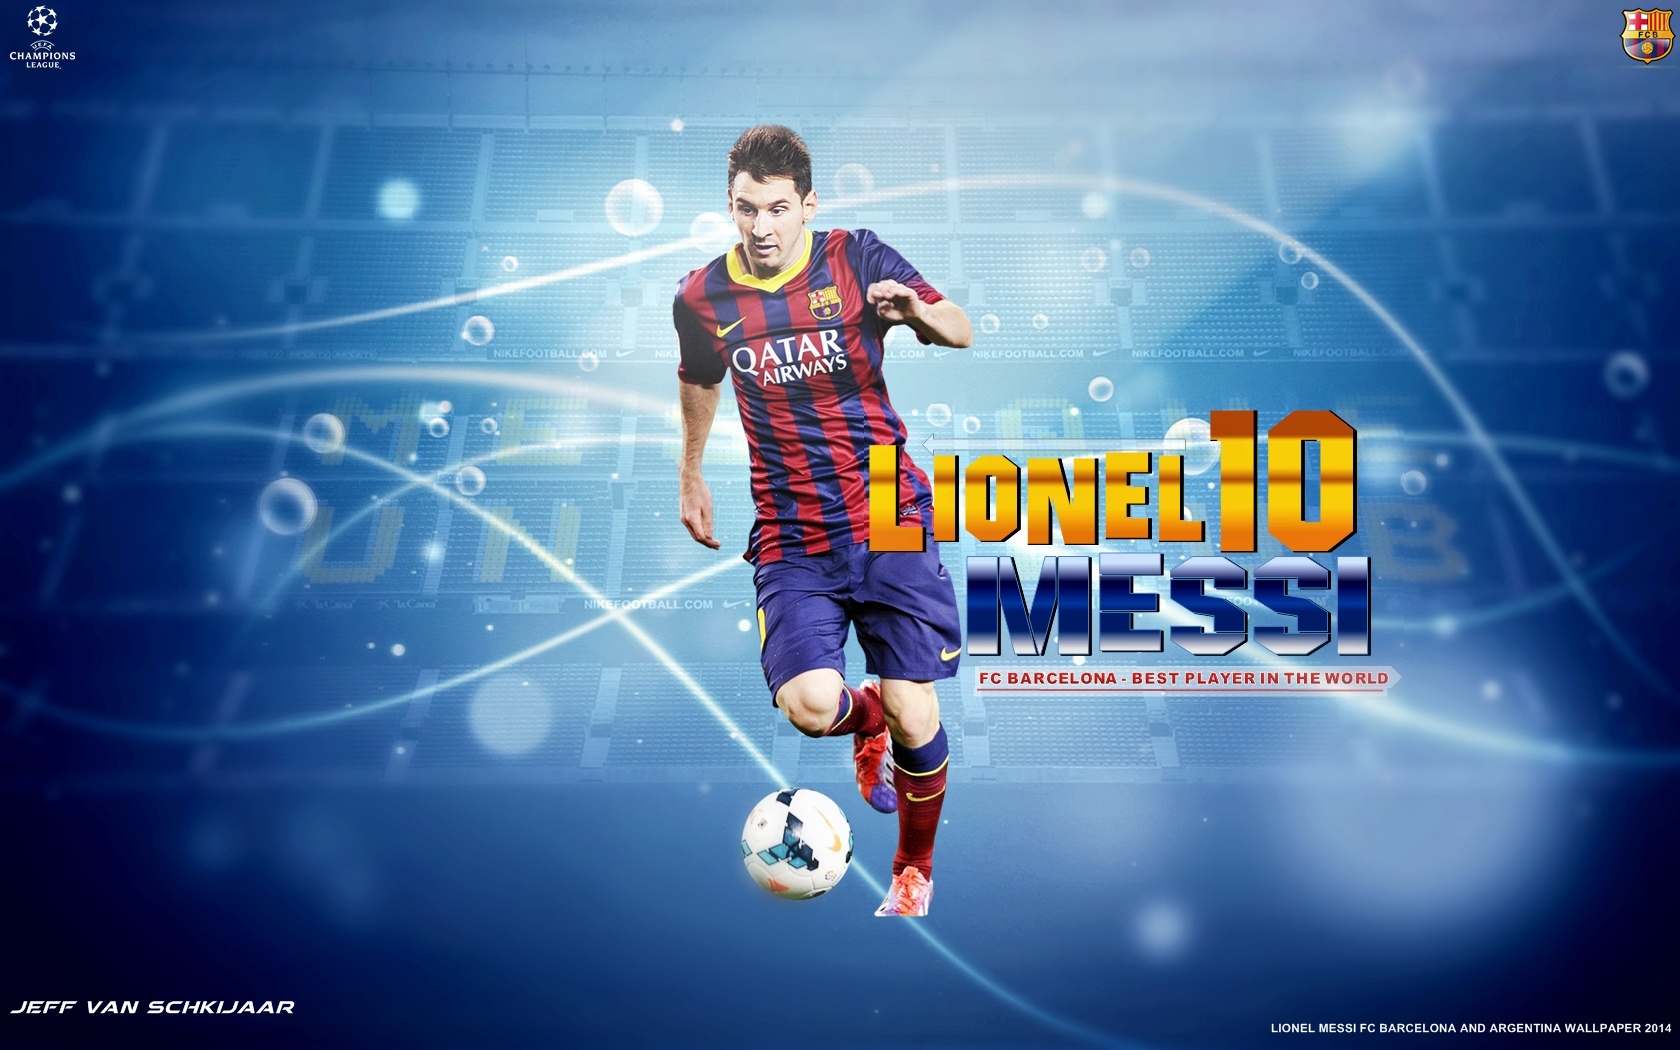 Lionel Messi Wallpapers Download High Quality HD Images of Messi 1680x1050